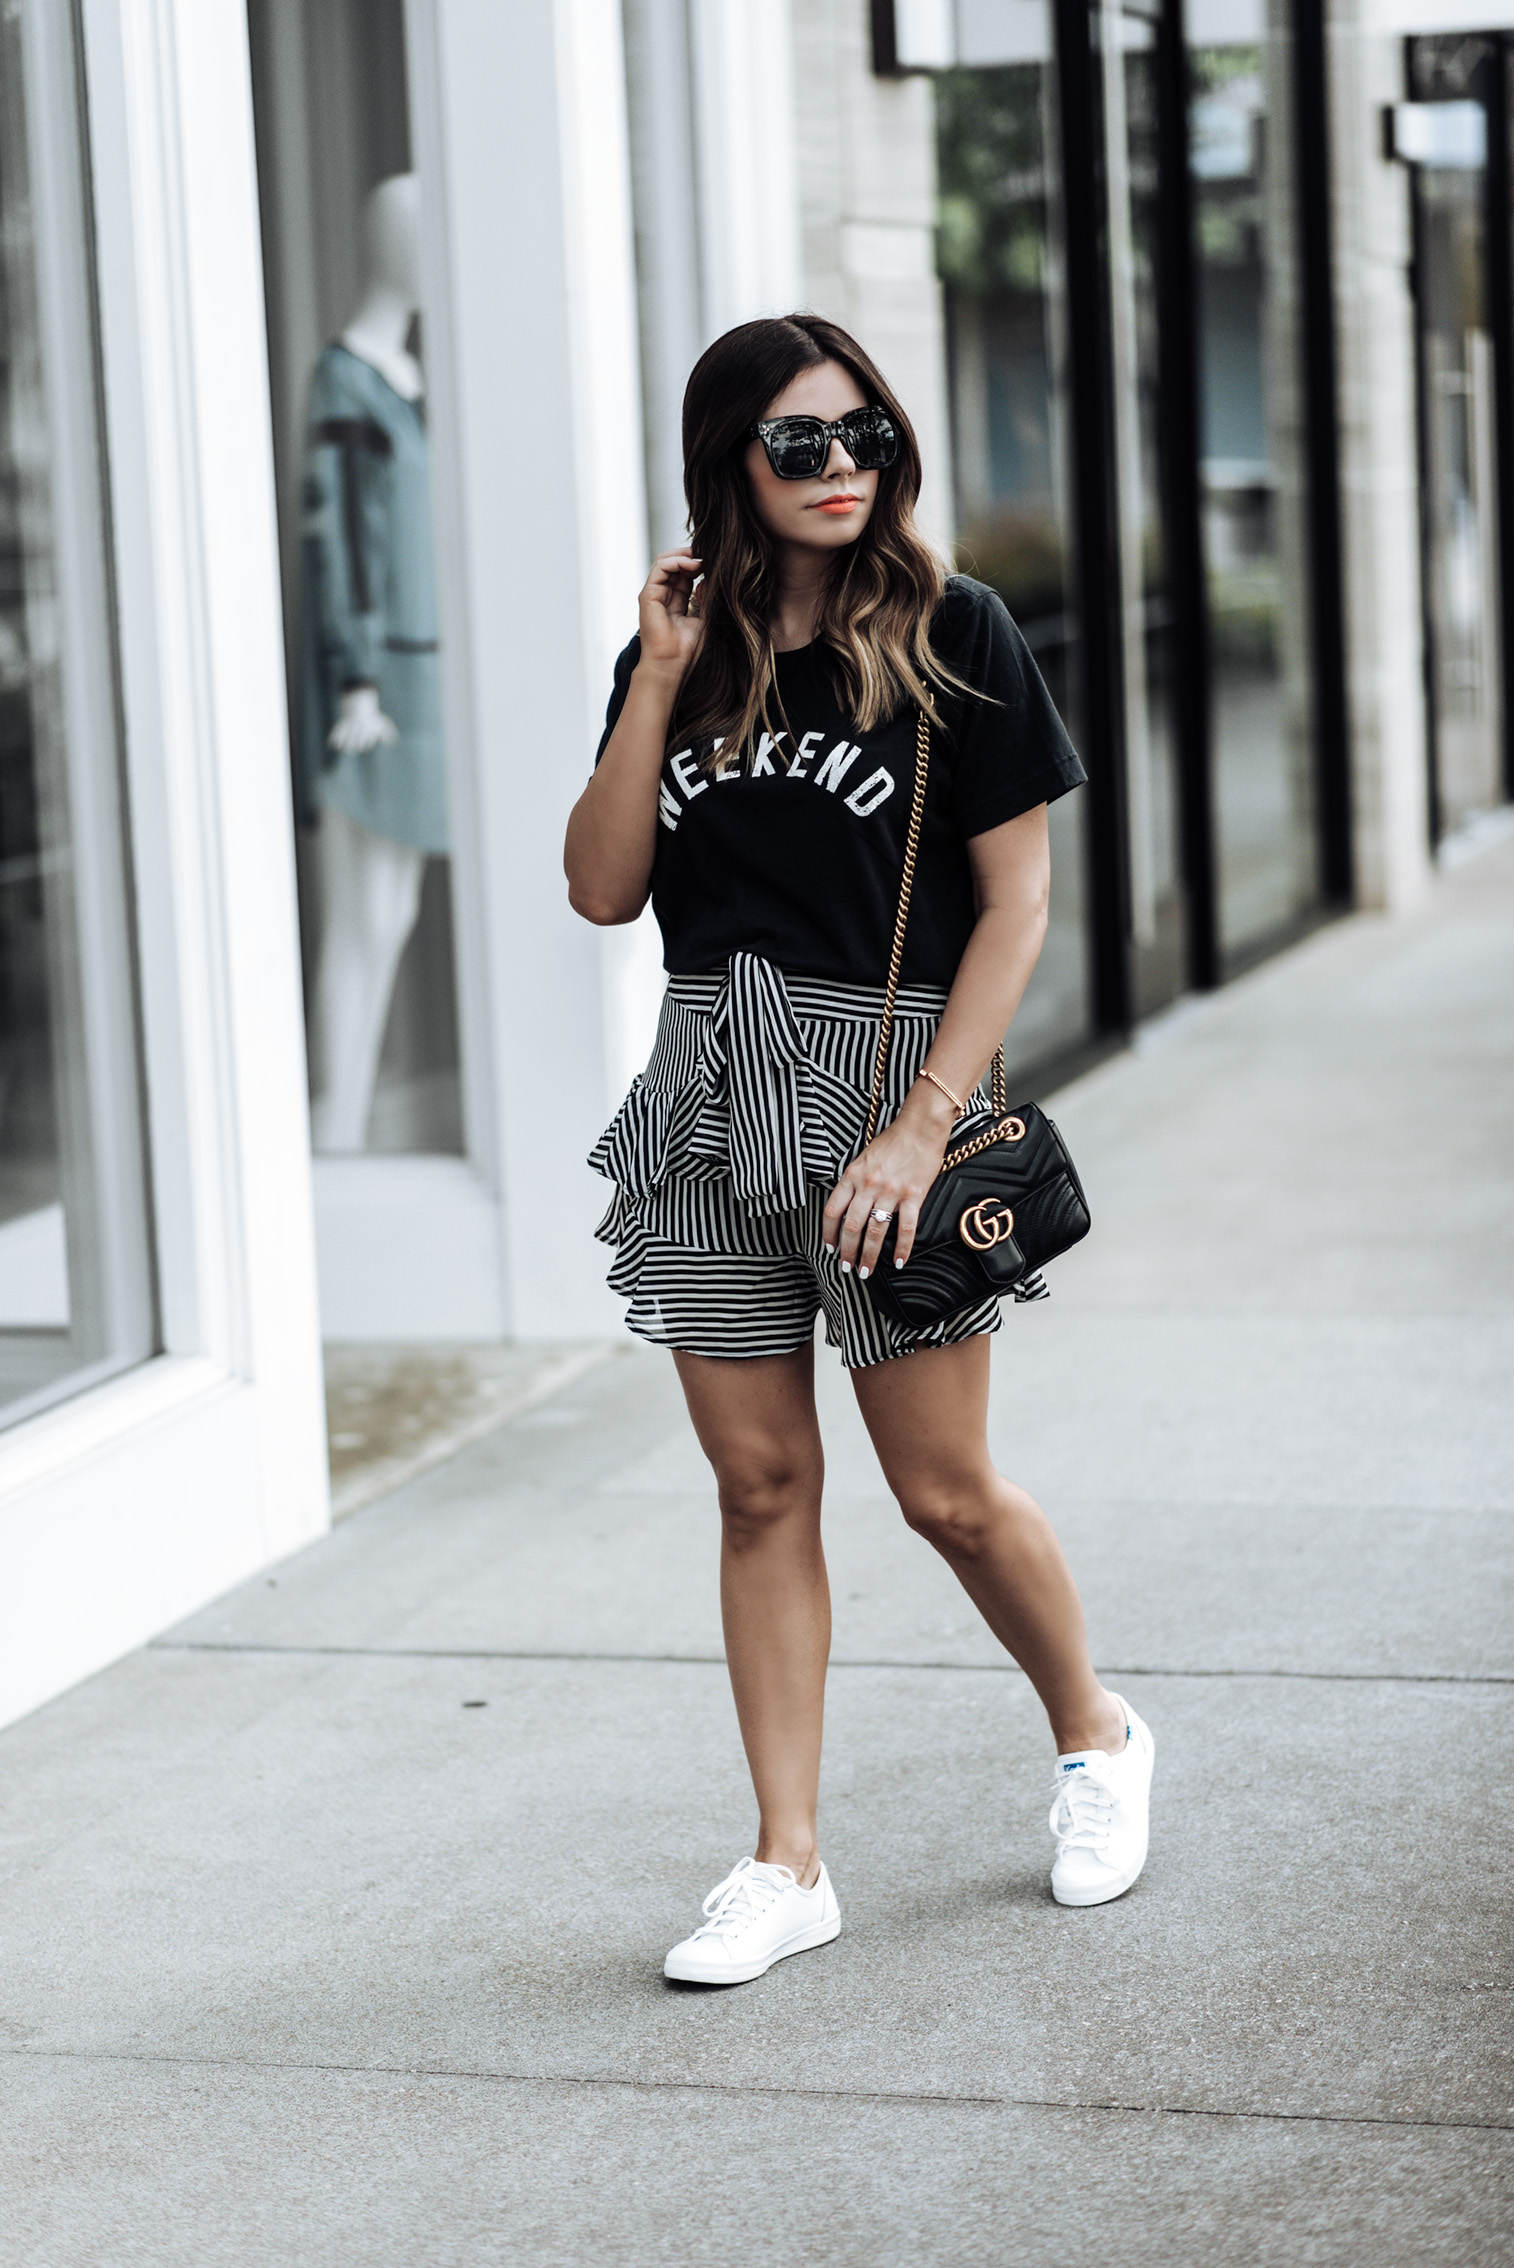 Houston fashion blogger Tiffany Jais | Streetstyle blogger | Weekend Tee (On sale for only $20) | Striped ruffle skirt, here | Gucci Marmont Bag | {C/O} Leather Kickstart Keds | Bangle {C/O} Monica Vinader | Sunnies